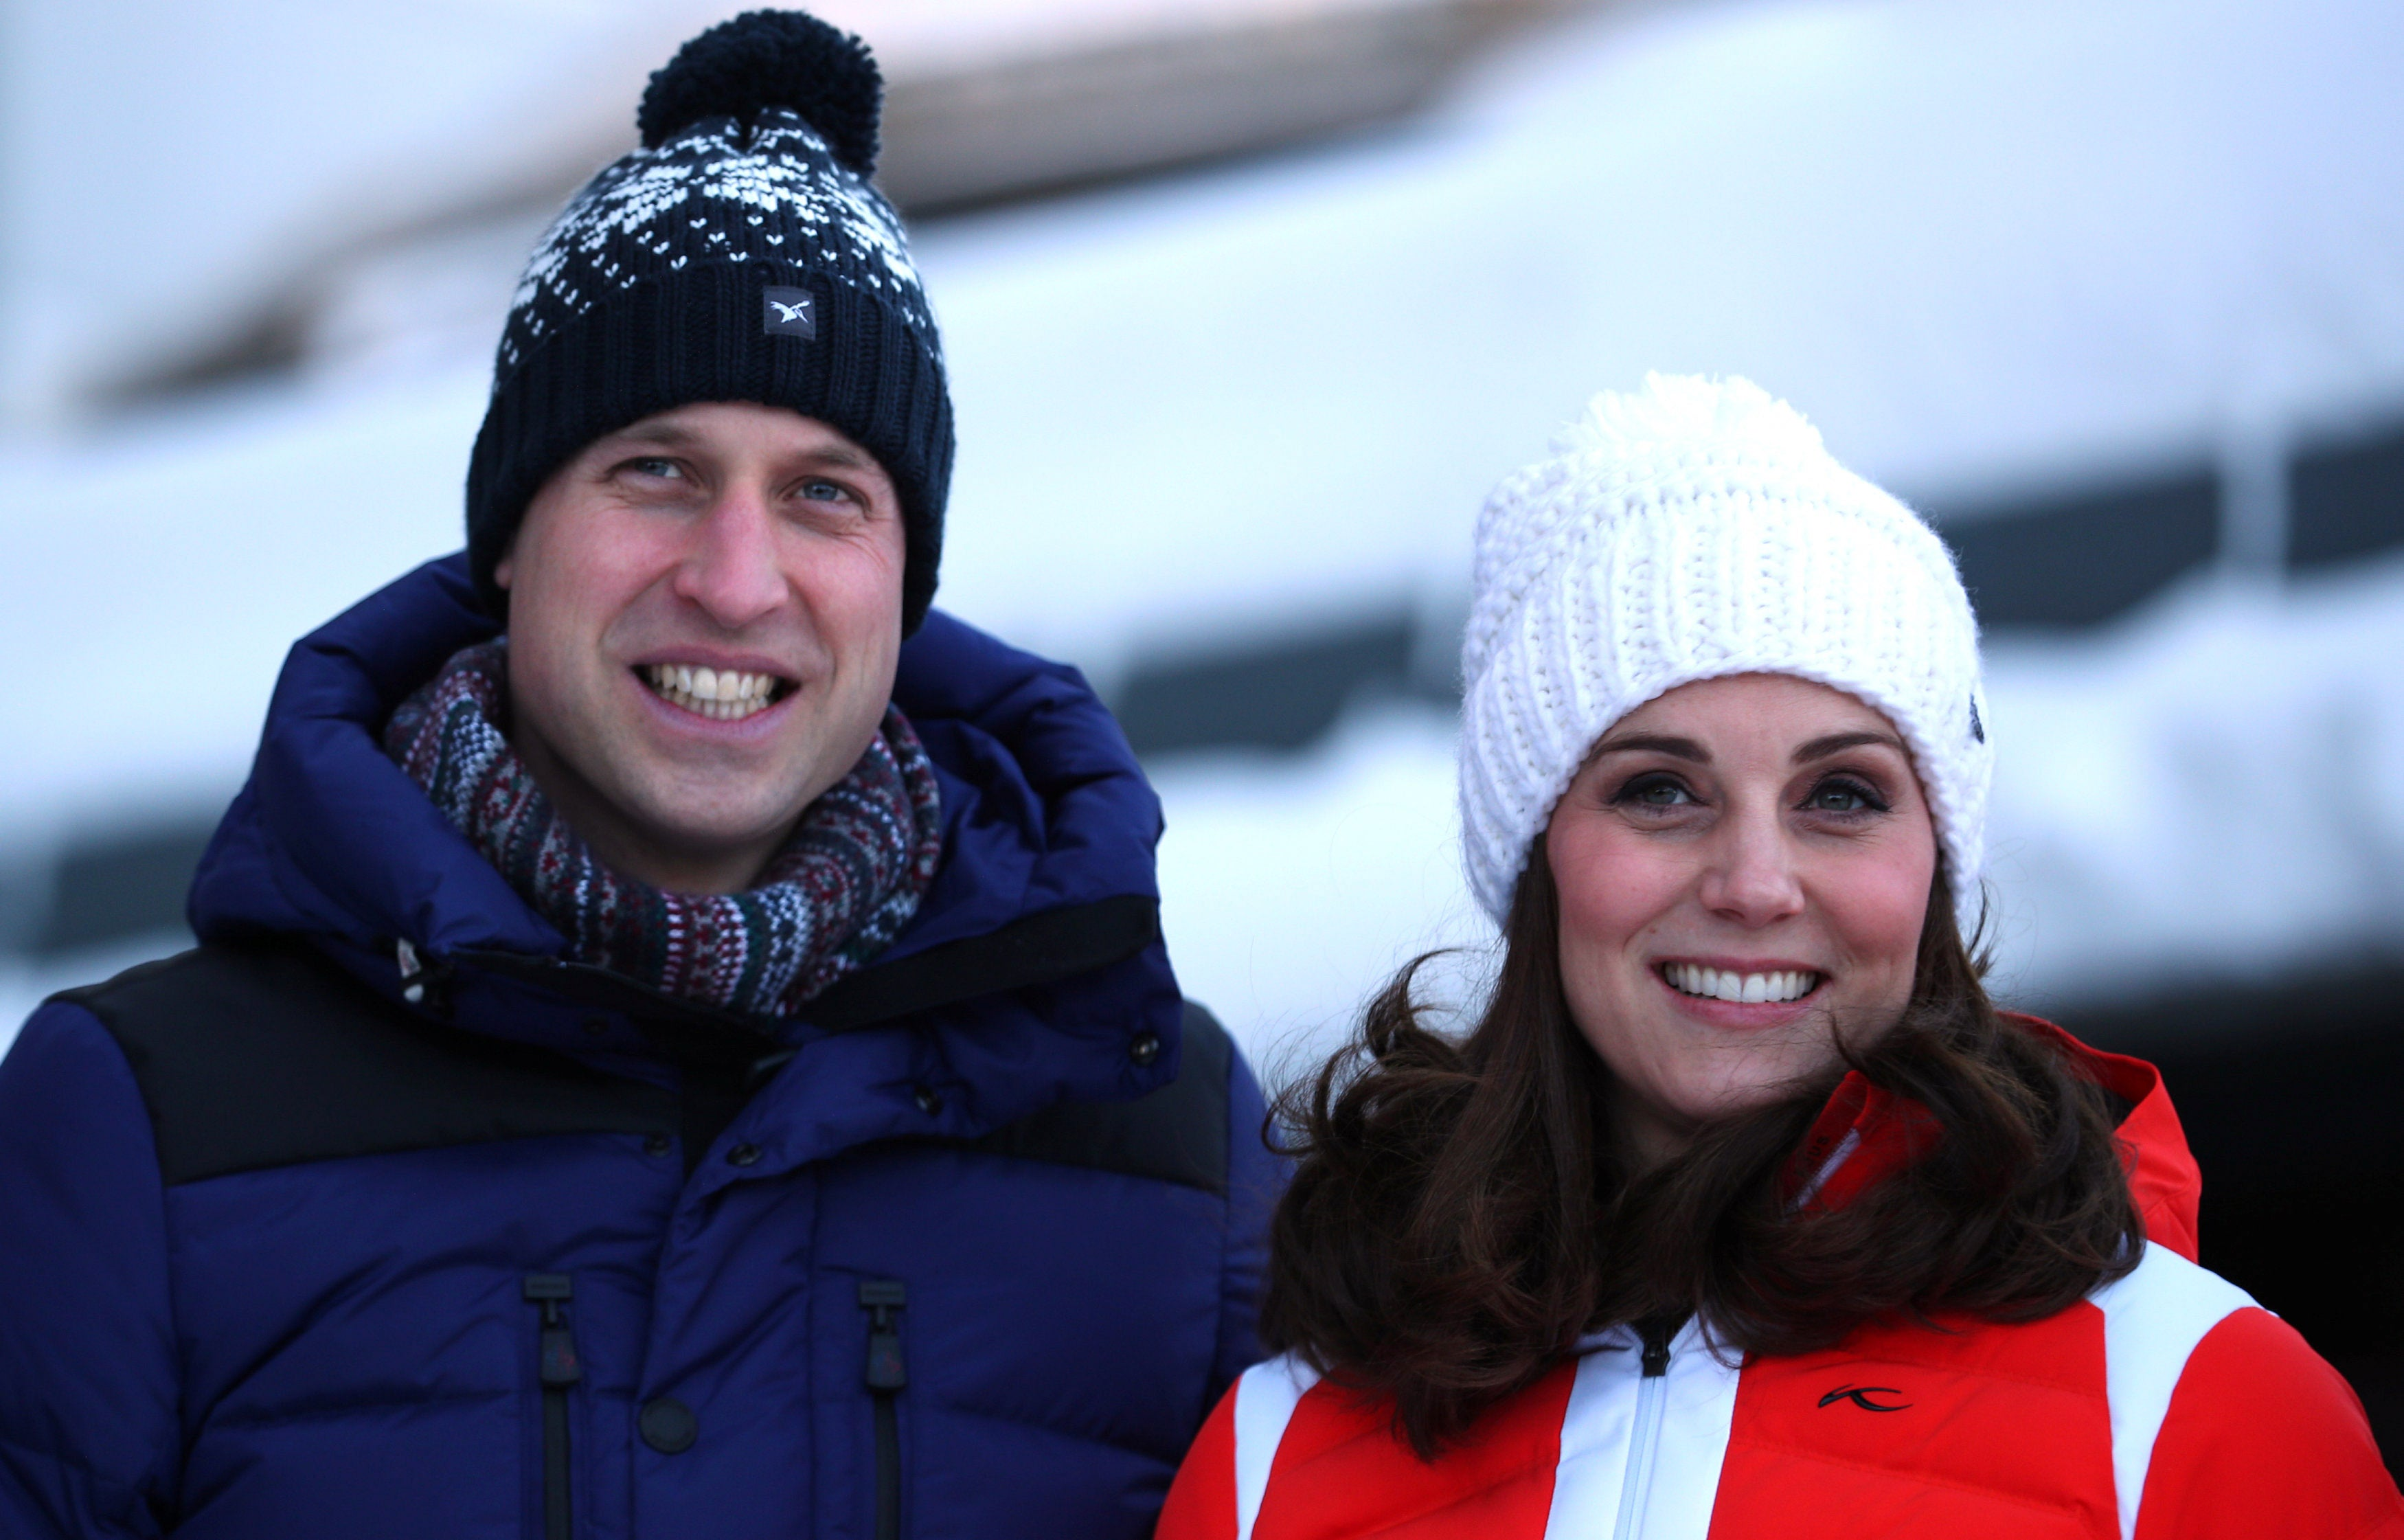 f7d8a4bc4e9 Kate Middleton and Prince William Adorably Wear Ski Gear on Final Day of  Royal Tour of Norway -- Pics